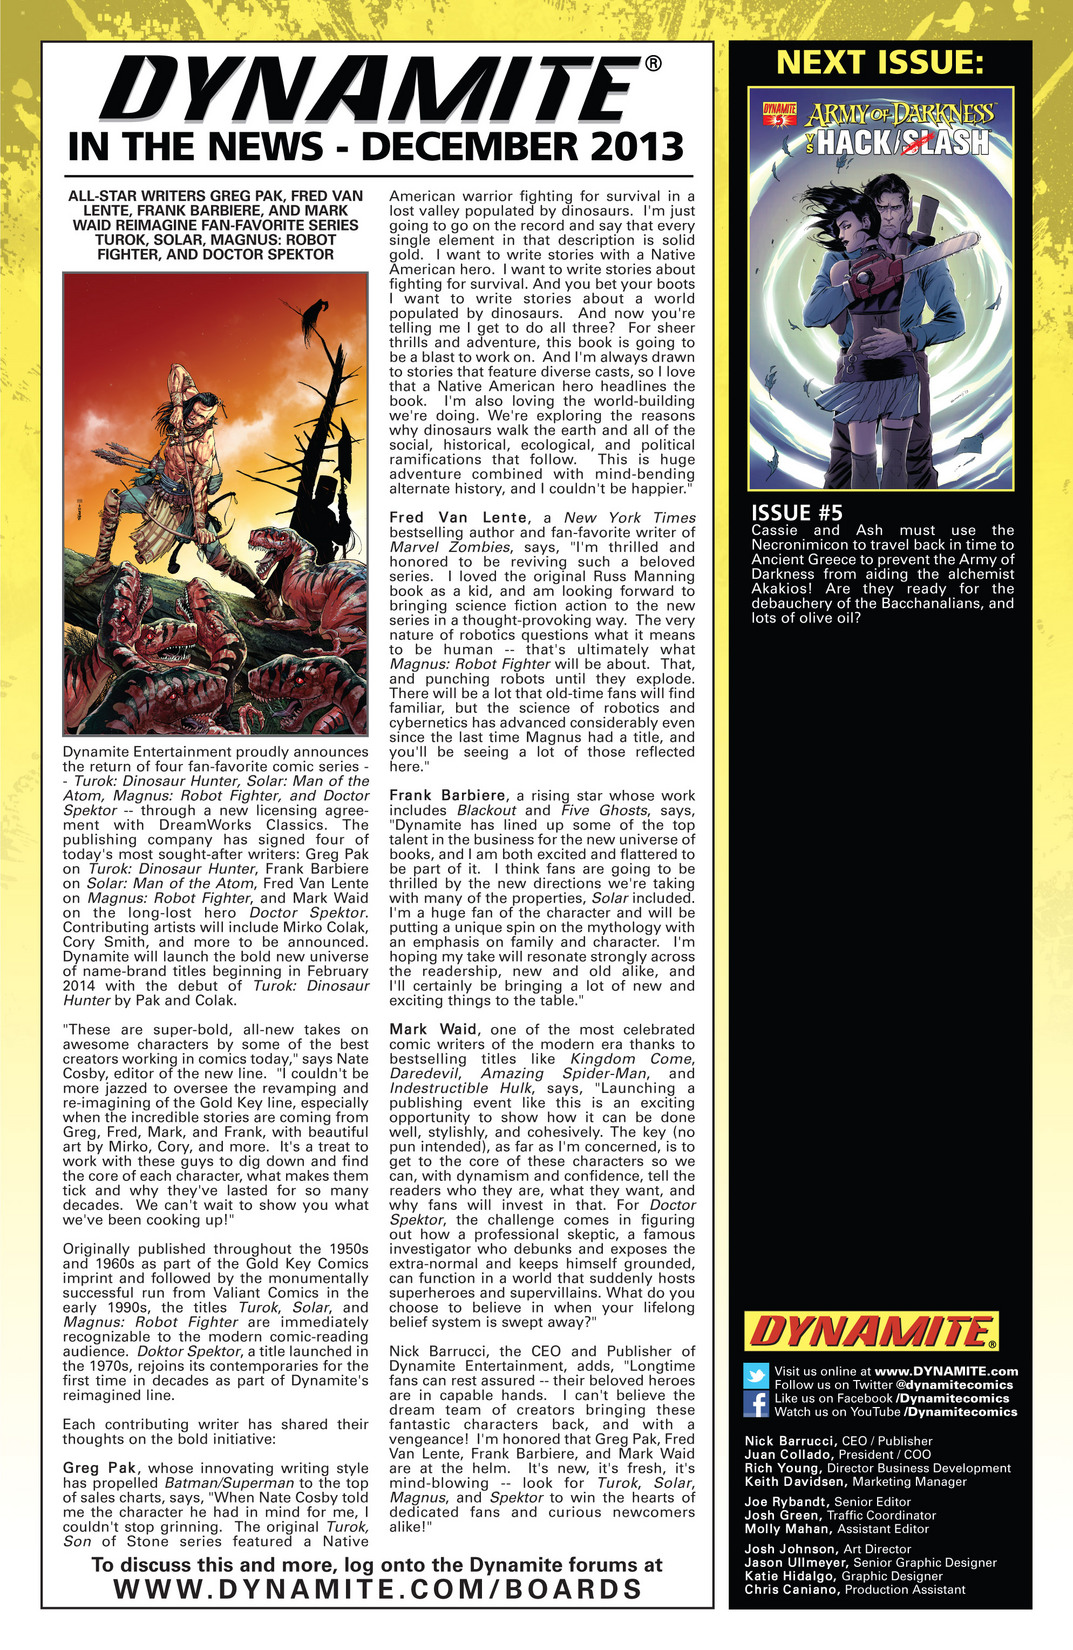 Read online Army of Darkness vs. Hack/Slash comic -  Issue #4 - 25